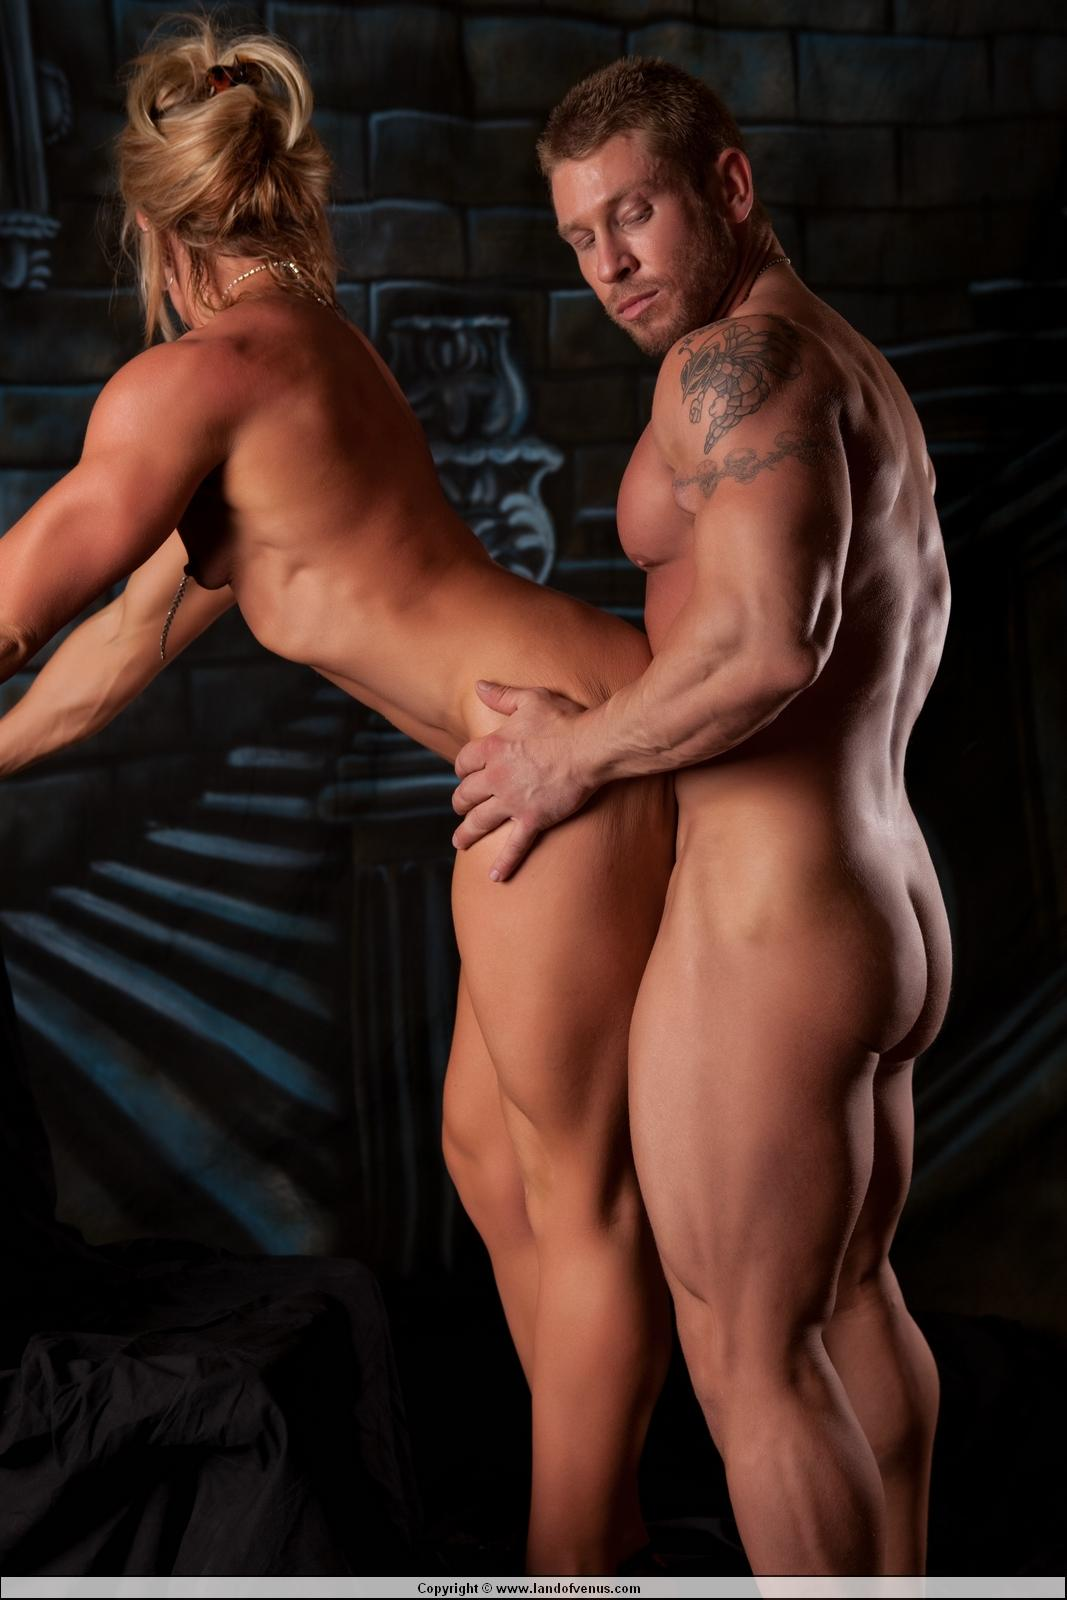 gay muscular milf escort movies